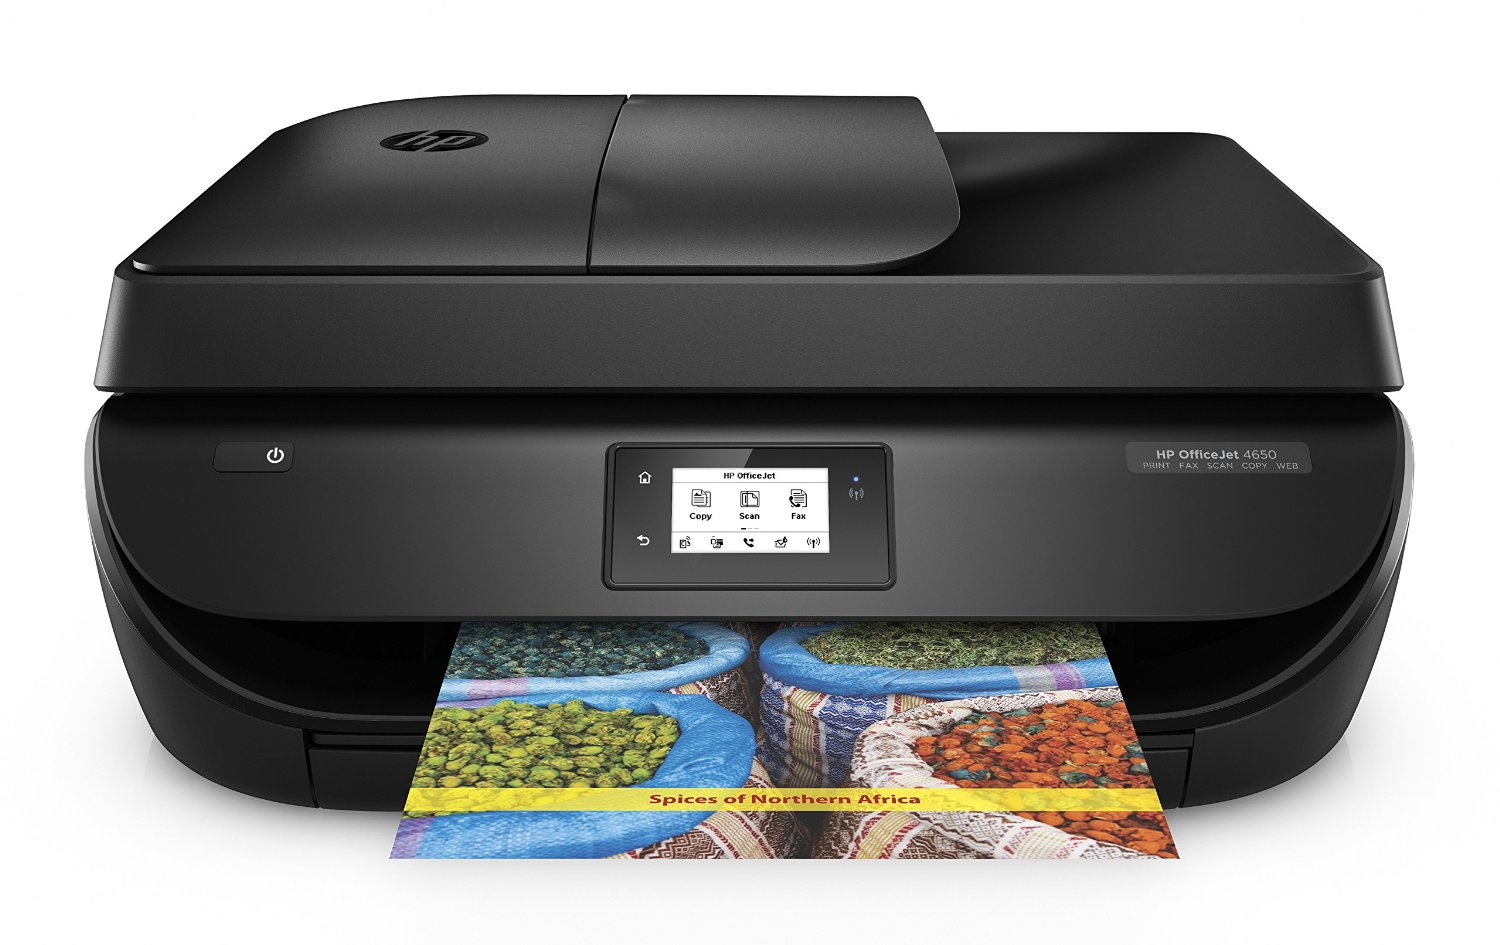 comprar HP OfficeJet 4650 opiniones